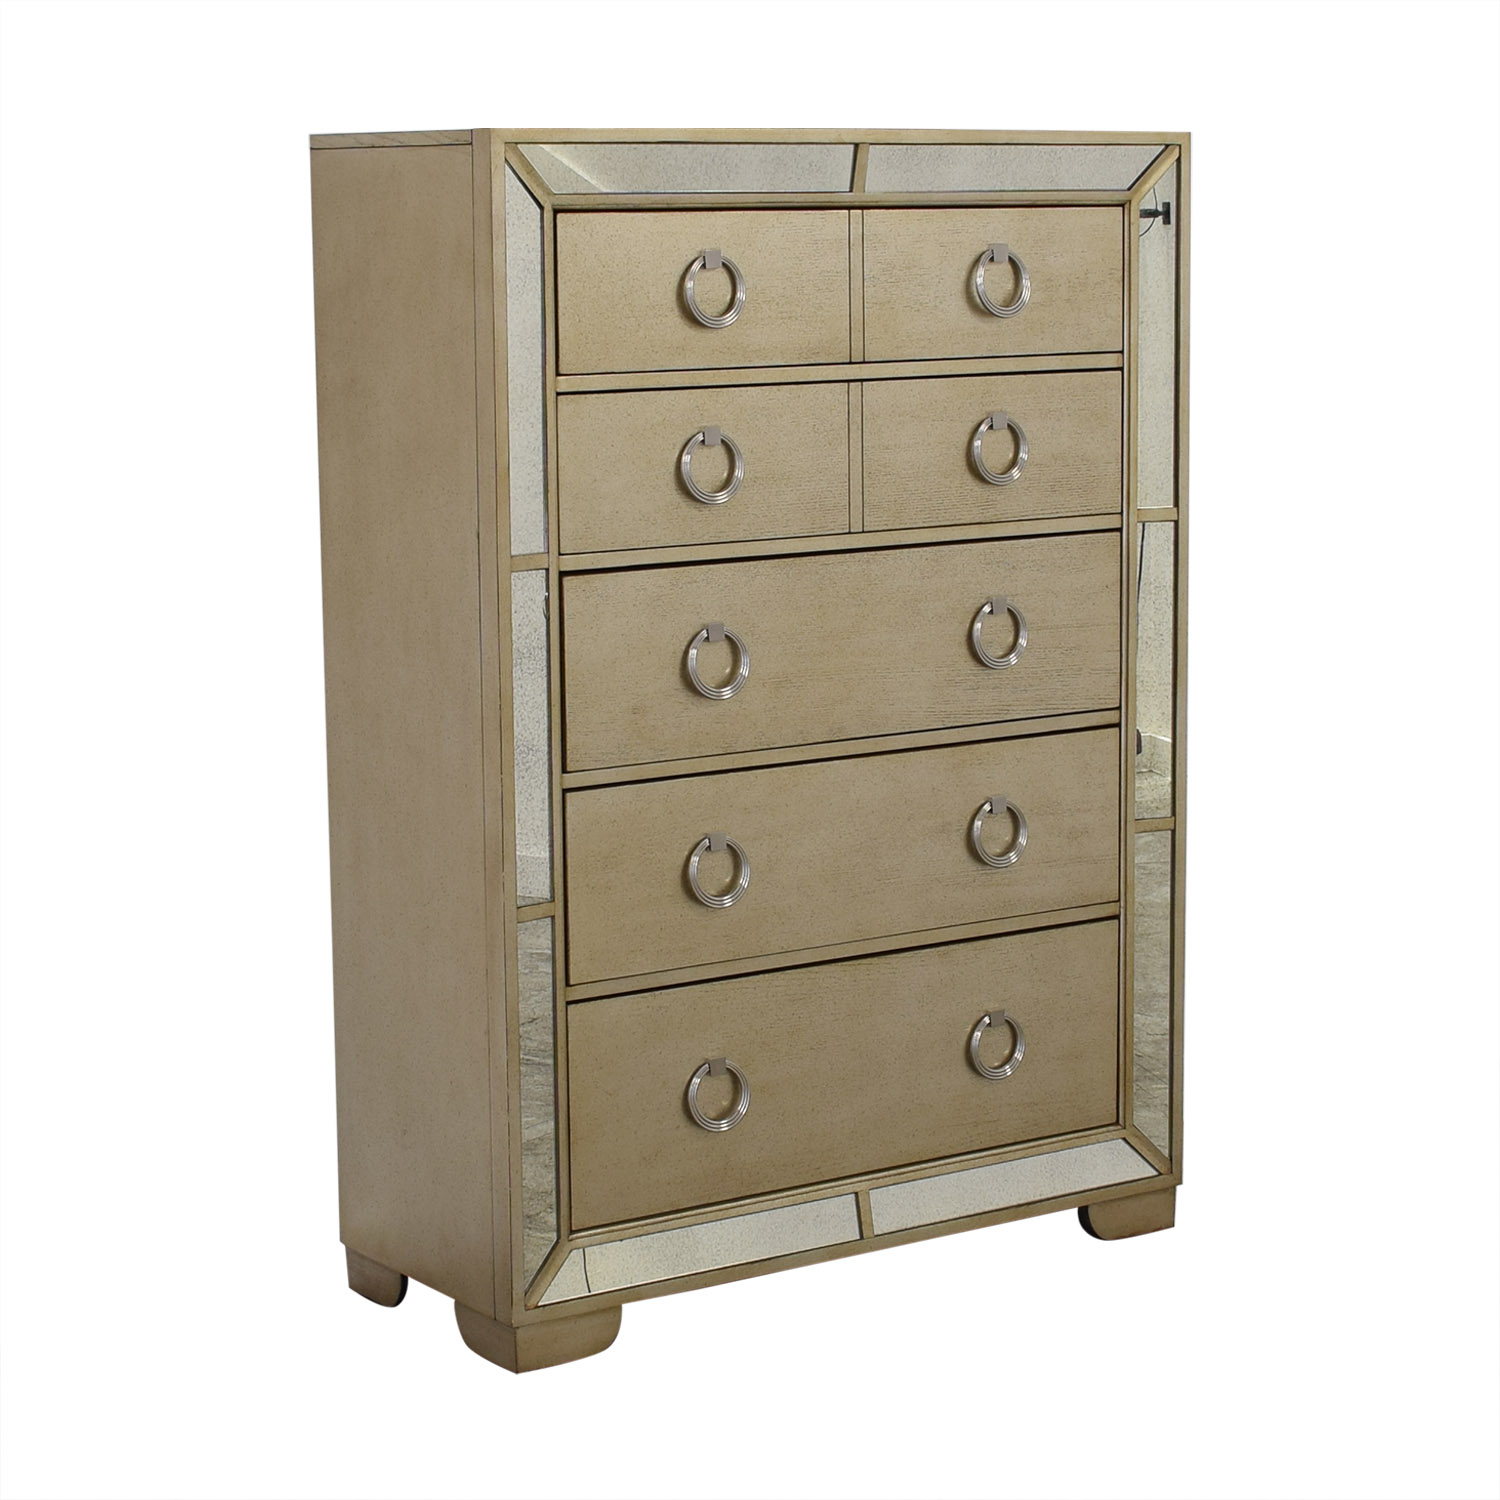 Macy's Ailey Five Drawer Chest sale